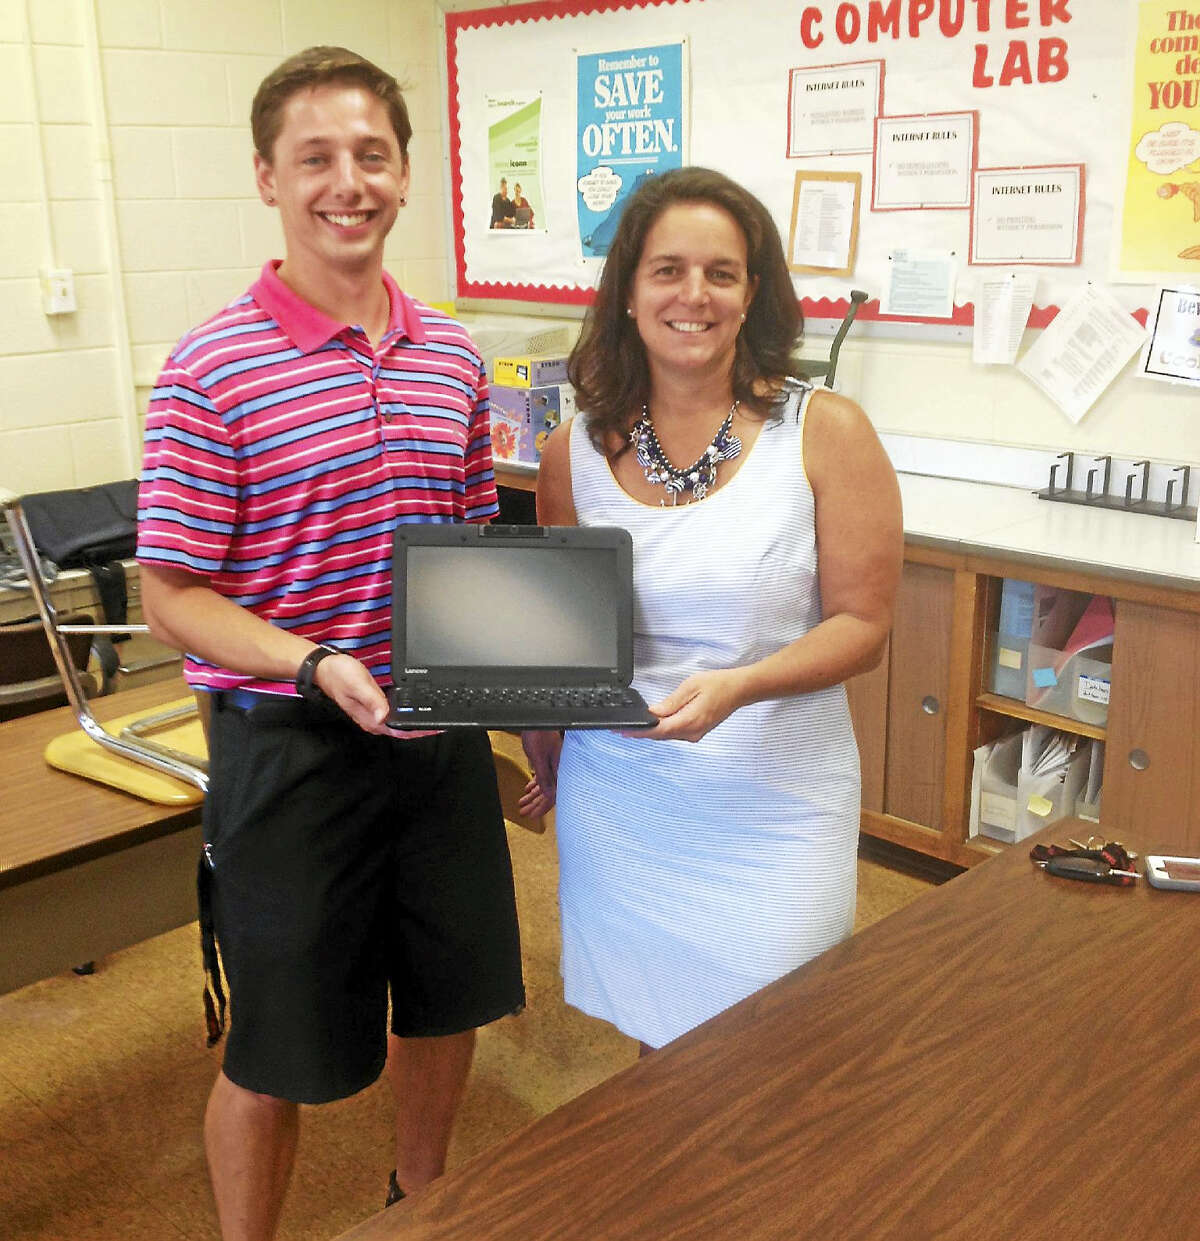 Portland Public School Technology Integration Specialist Michael Peck and Director of Curriculum and Technology Krista Karch show off the new Lenovo notebooks that will be given out to all district fifth- through 12-graders come mid-September.